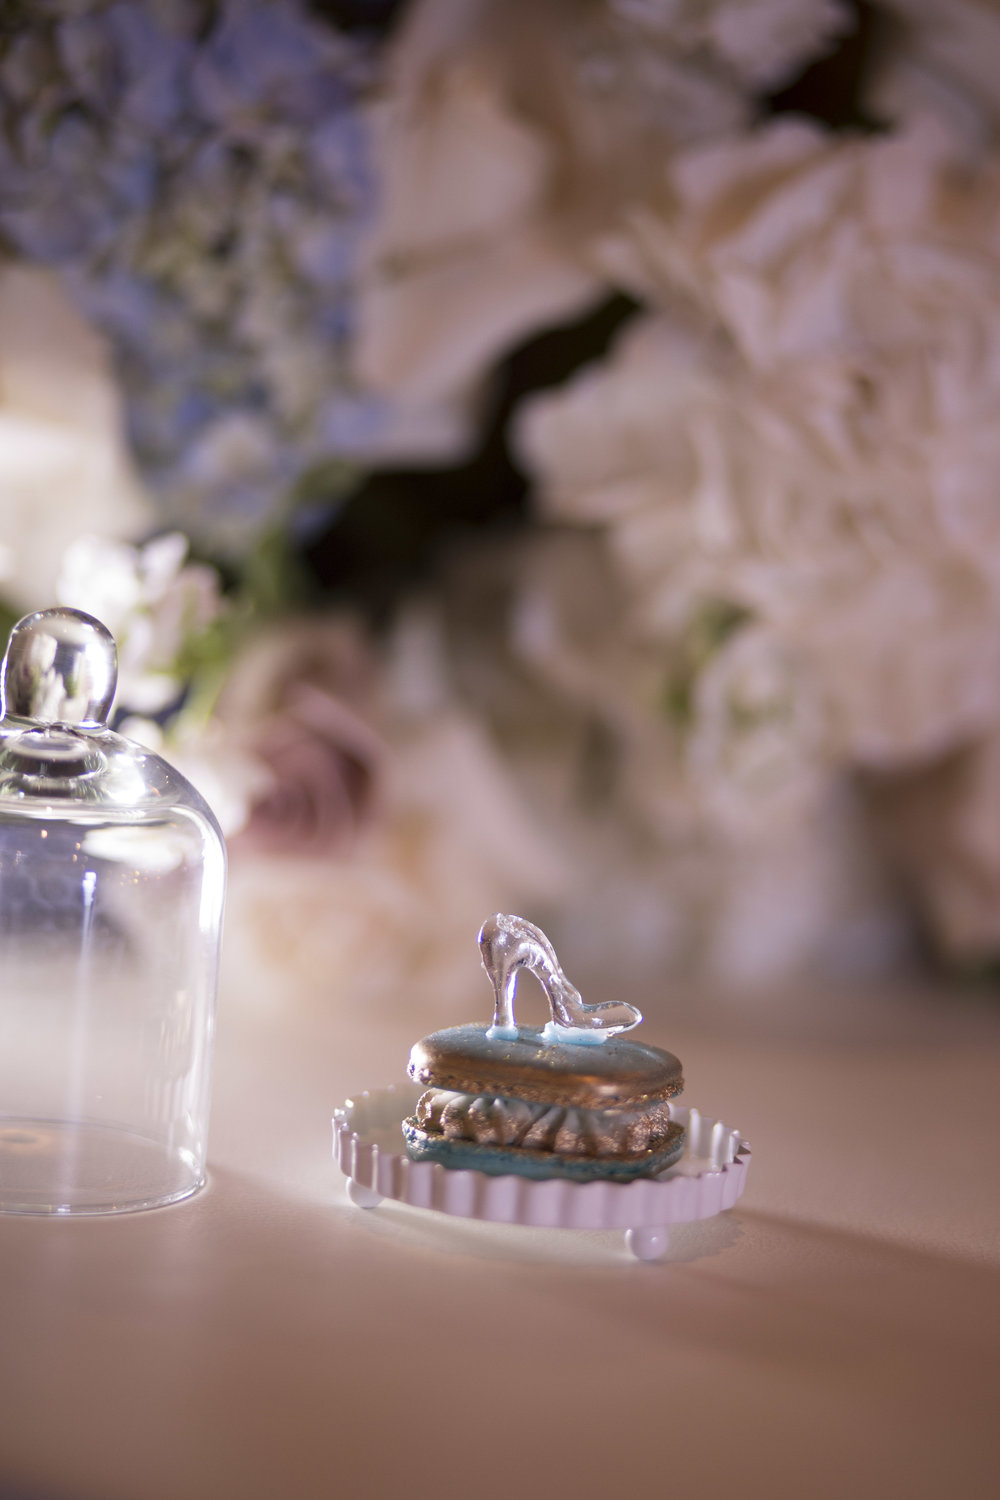 Sugar Favor - Each guests received a hand blown sugar glass slipped placed on a macaroon pillow and presented under glass for the perfect cinderella wedding. Luxury Las Vegas Wedding Planner Andrea Eppolito.  Image by AltF Photography.Luxury Las Vegas Wedding Planner Andrea Eppolito.  Image by AltF Photography.